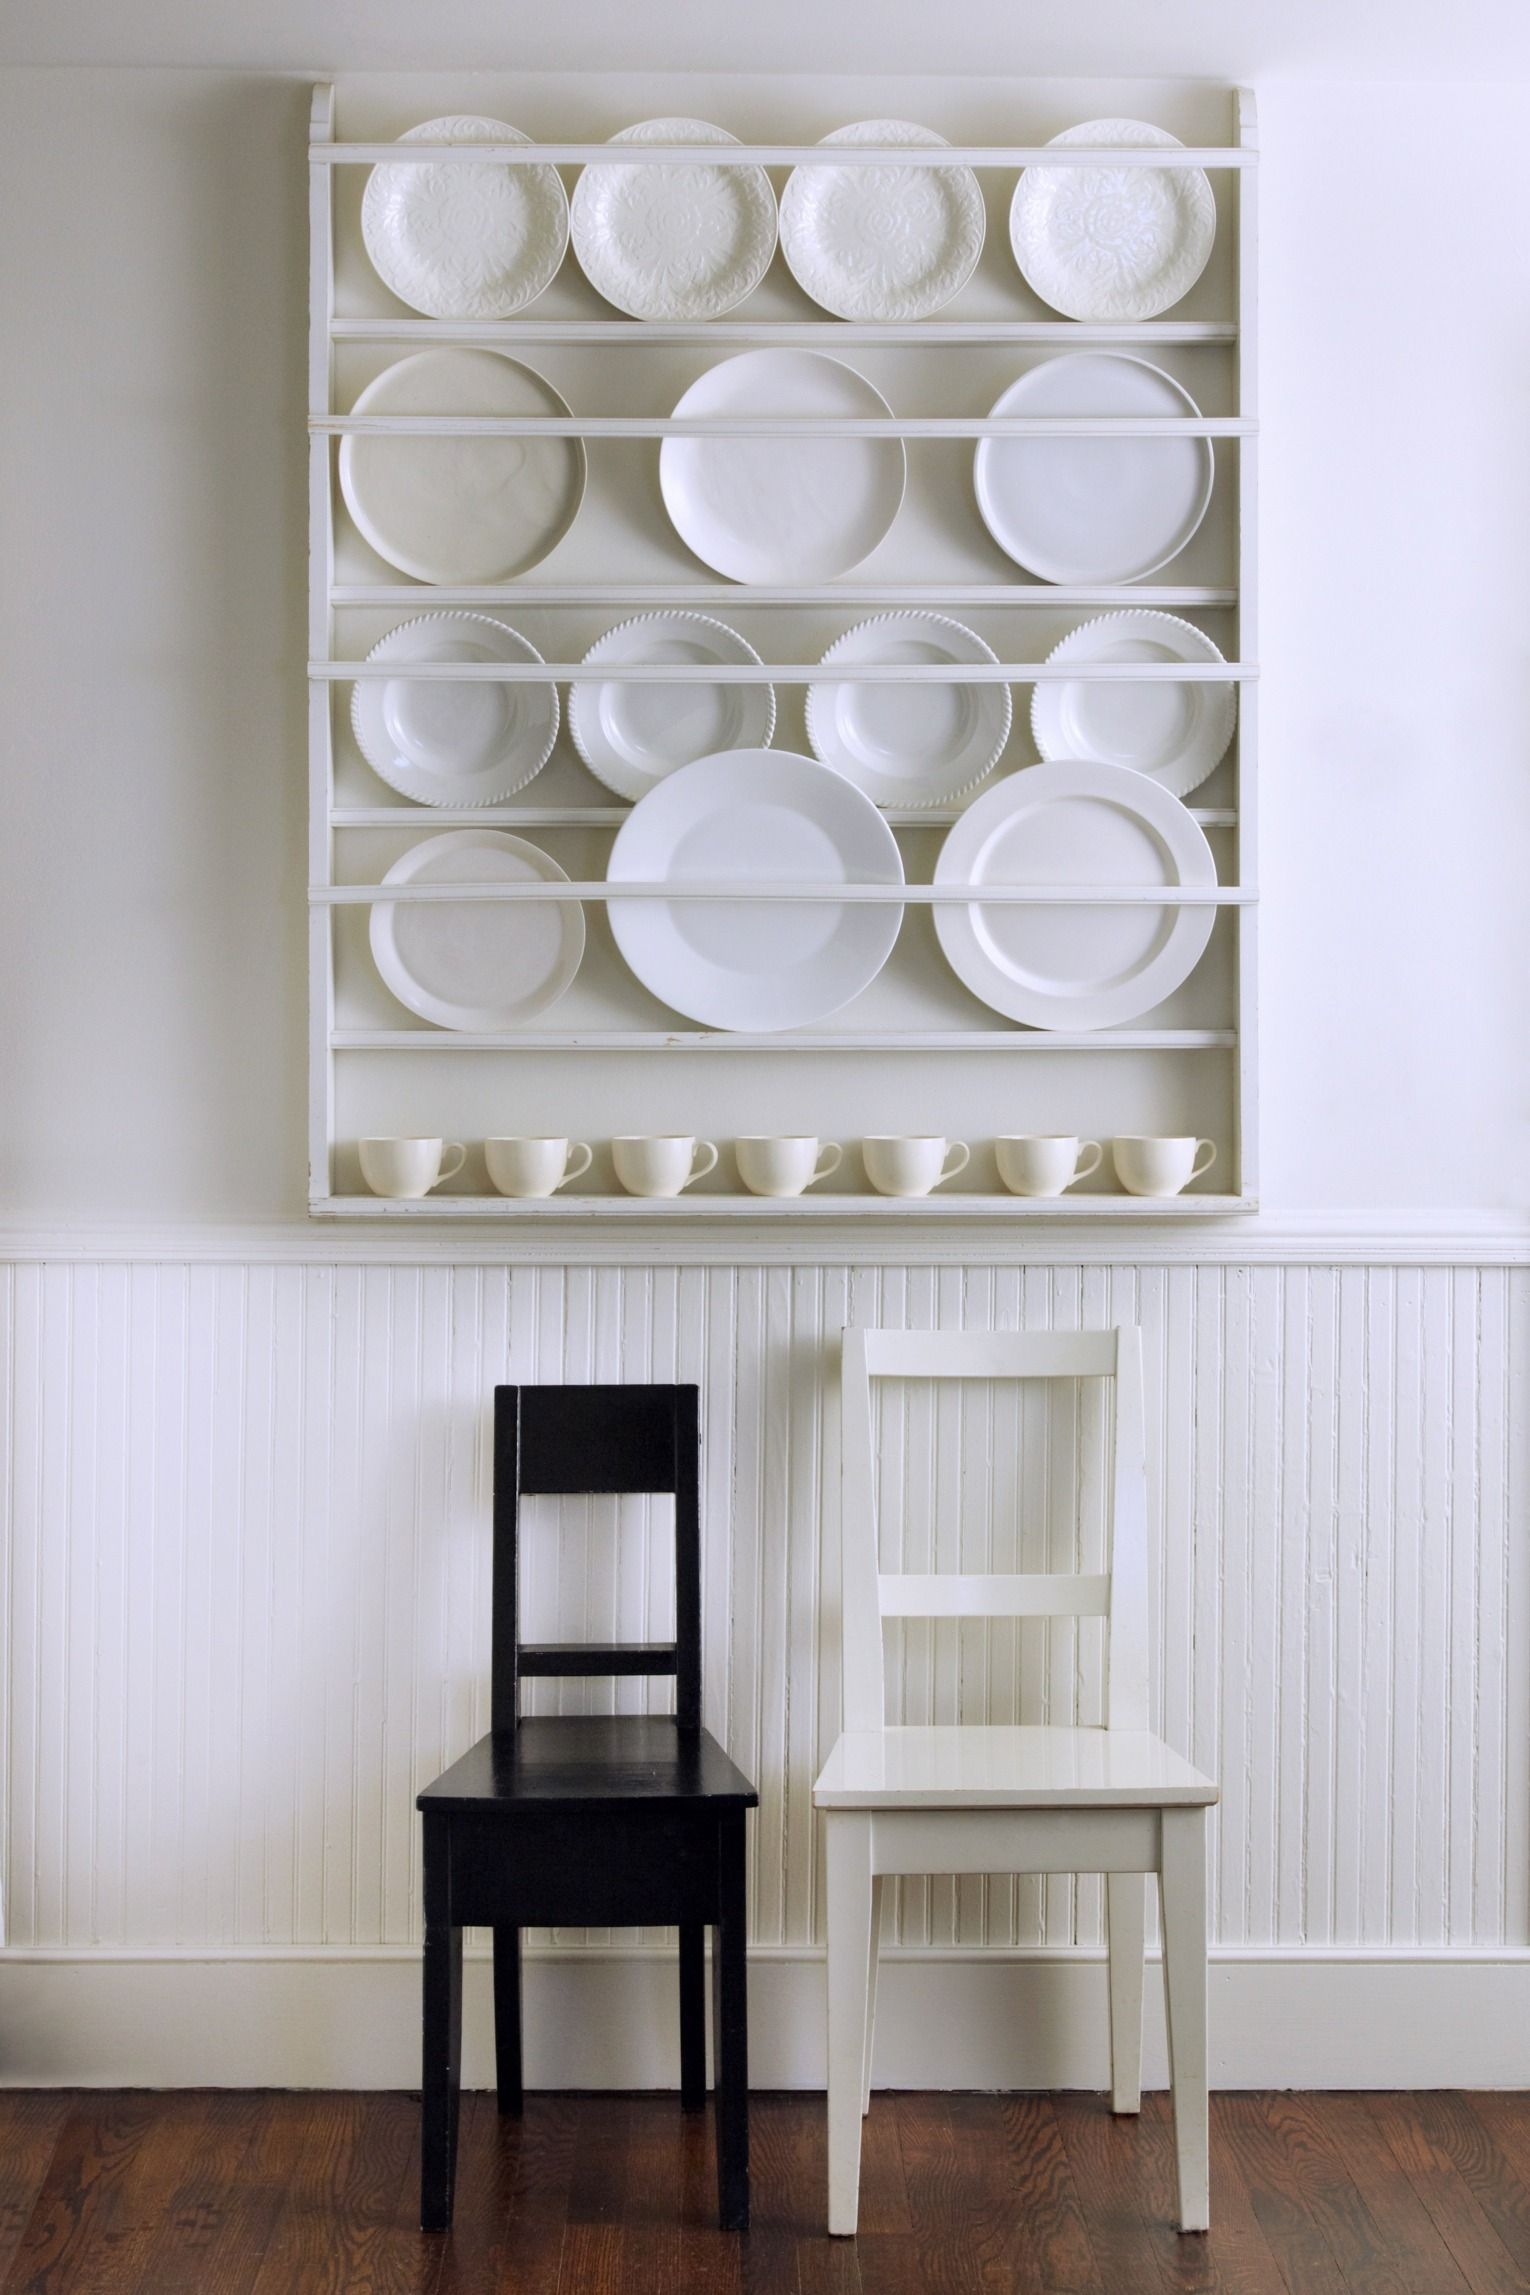 Tricia Foley On How To Create A Beautiful And Organized Home Plate Rack Wall Decorative Plates Display Wall Mount Plate Rack